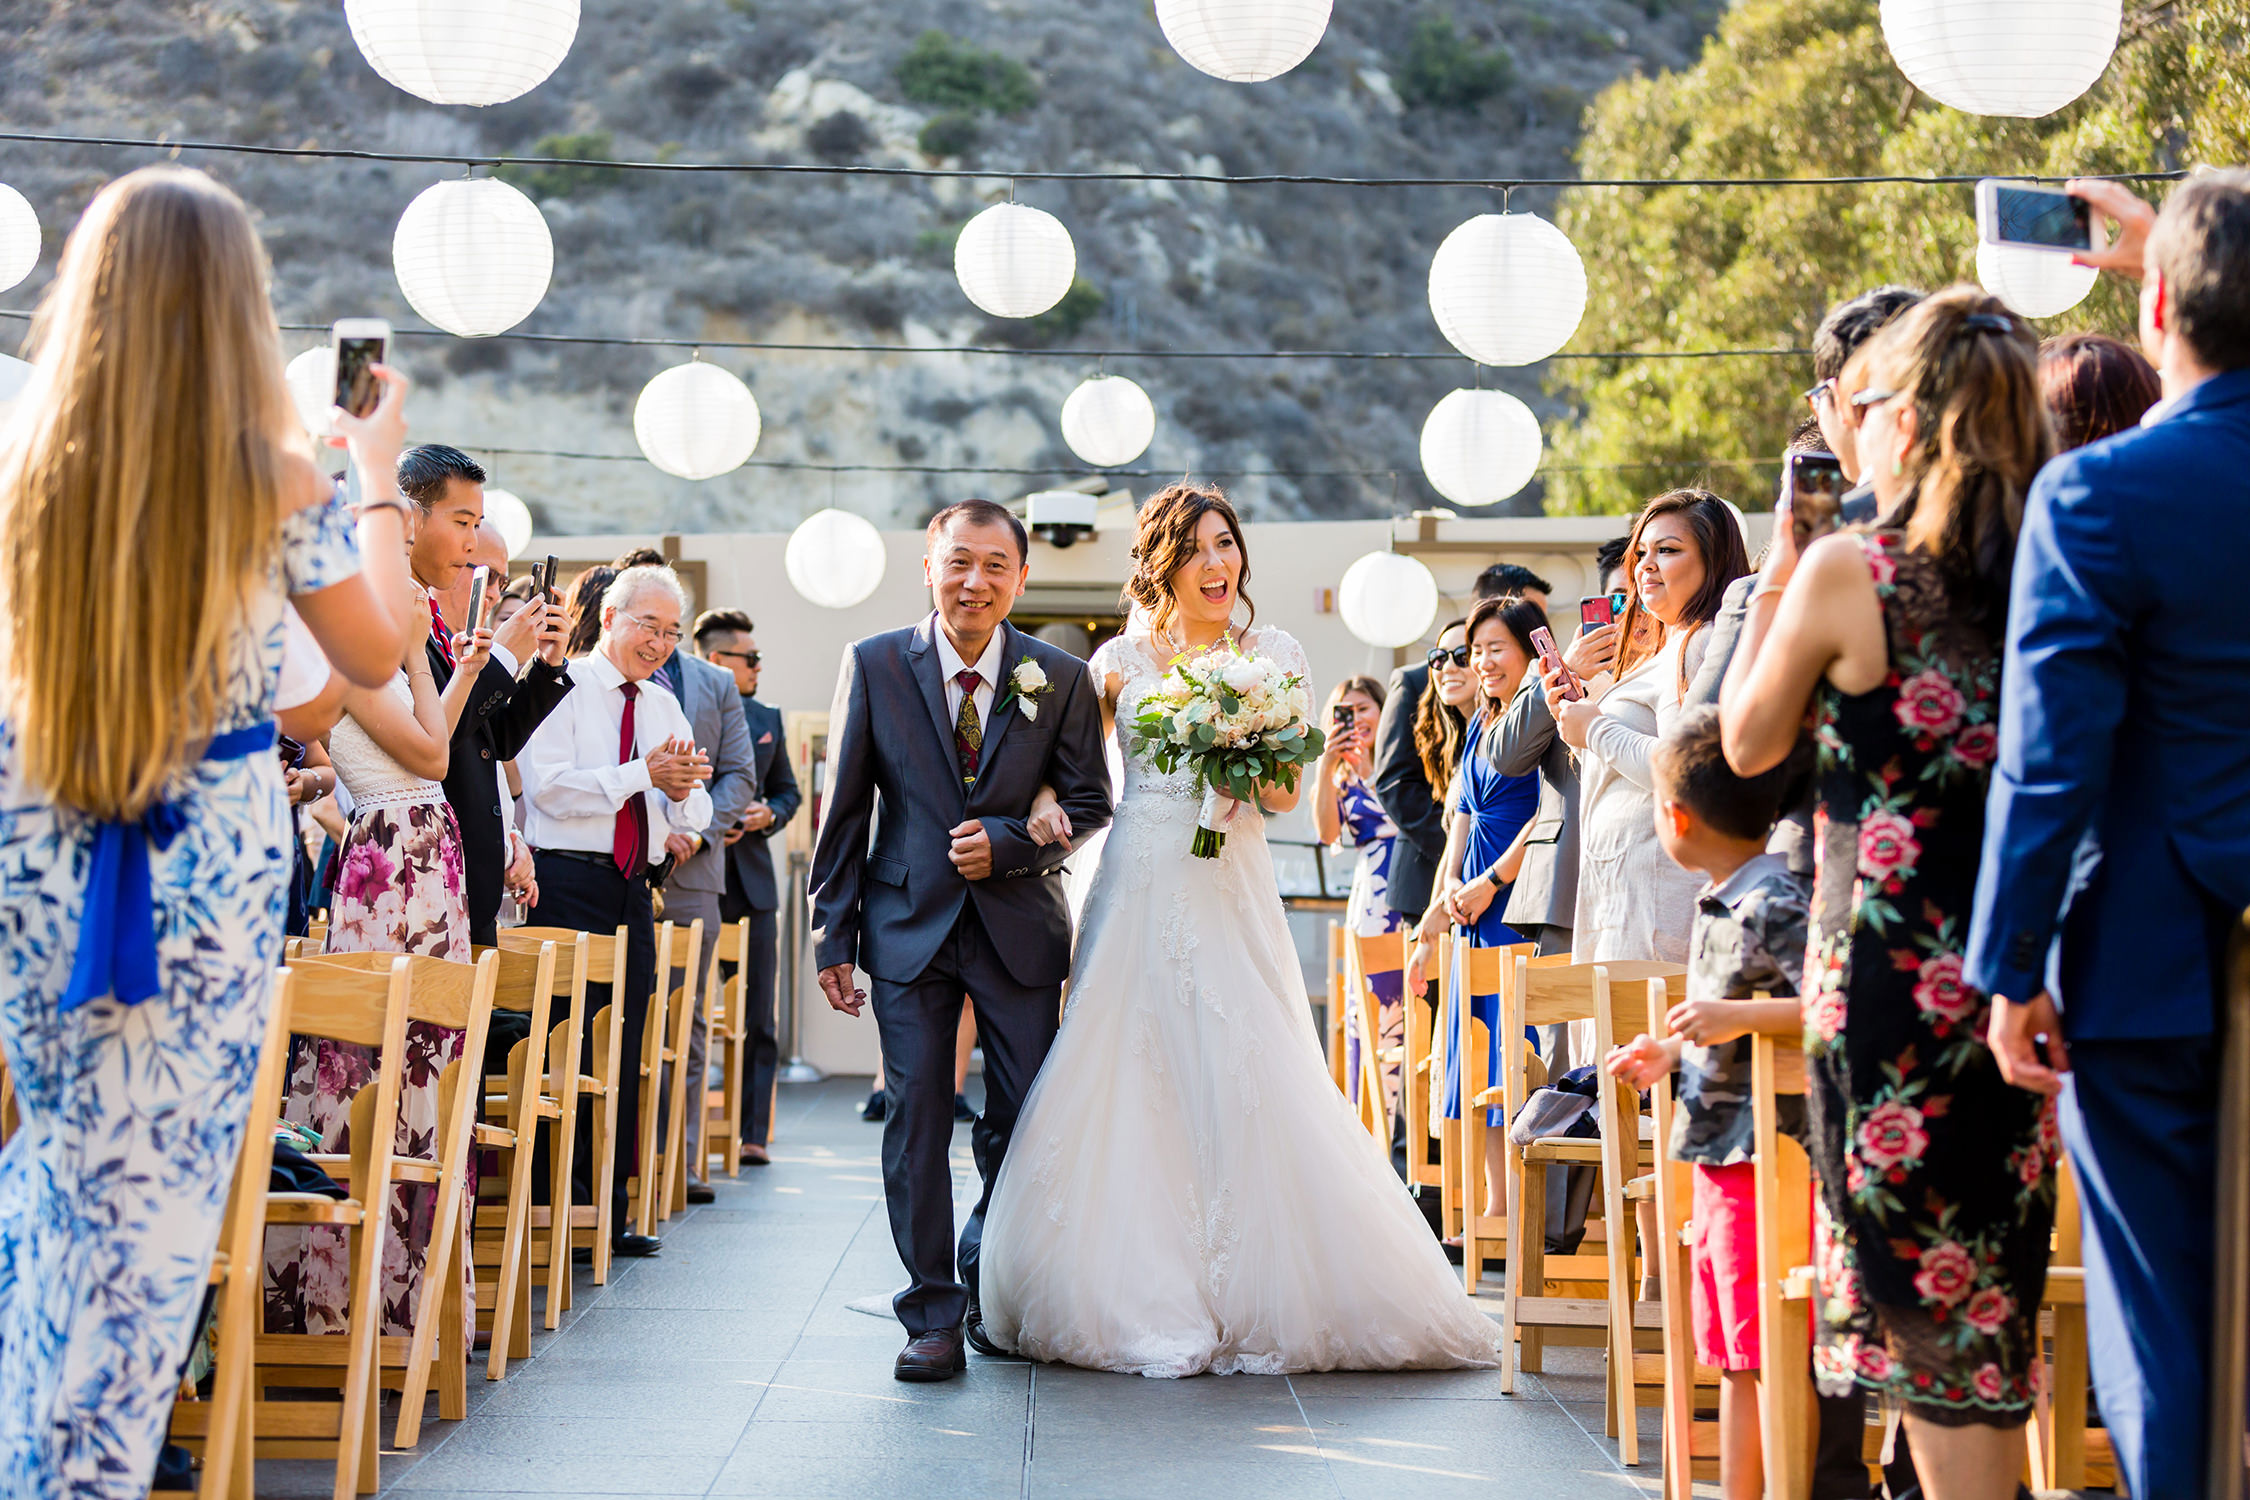 bycphotography seven degrees laguna beach wedding ceremony